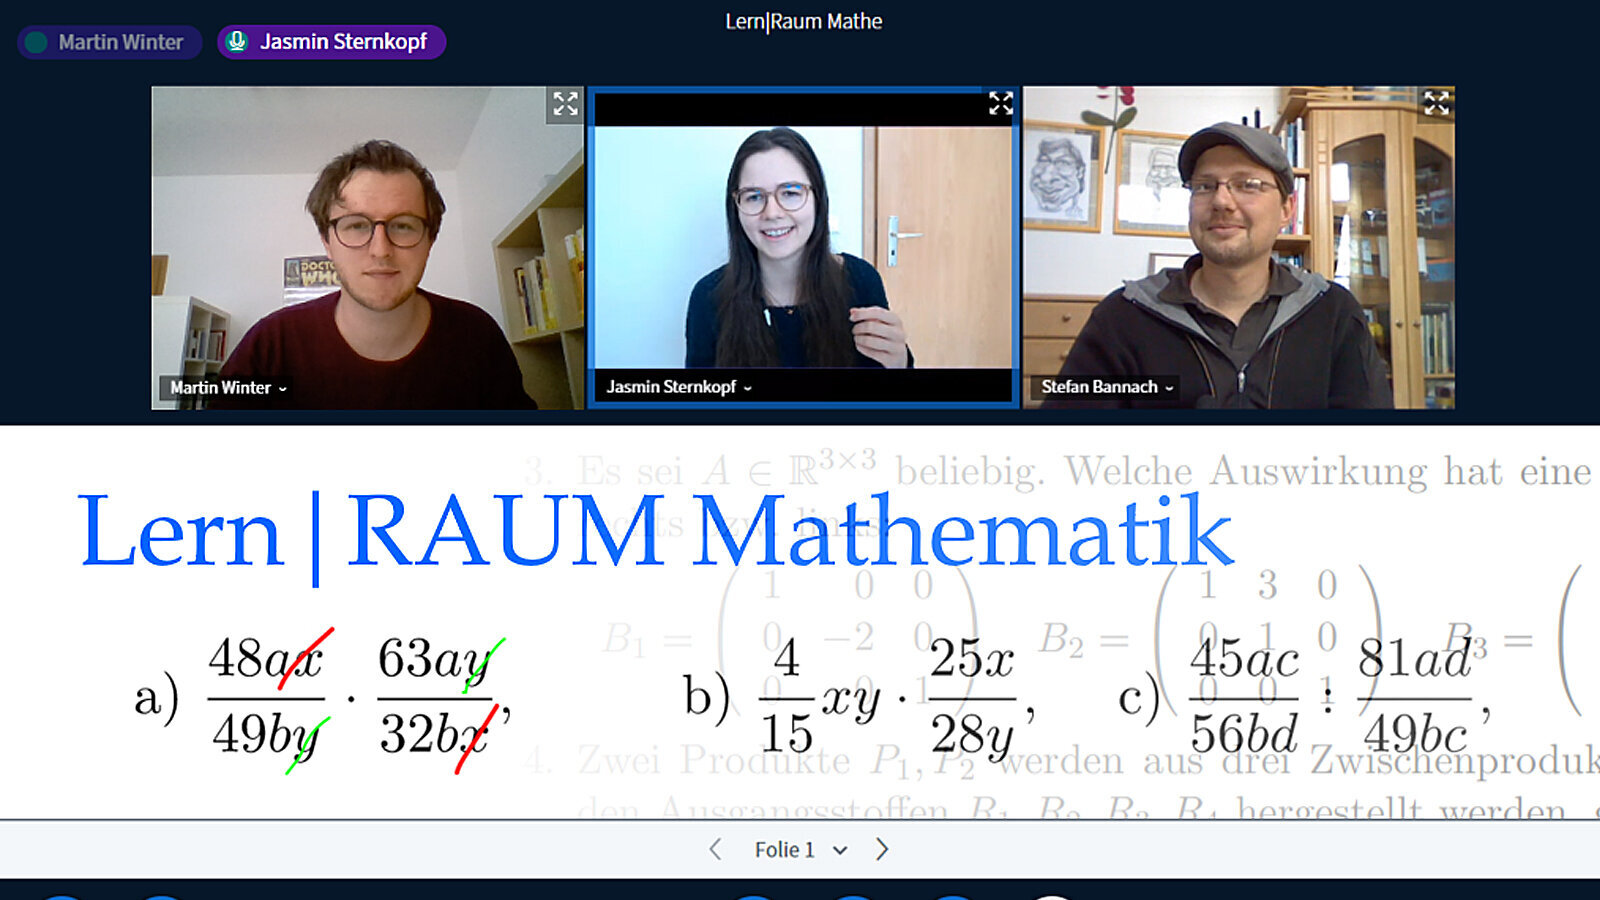 Screenshot from a video conference with three participants. Part of the screen shows a whiteboard with mathematical formulas.